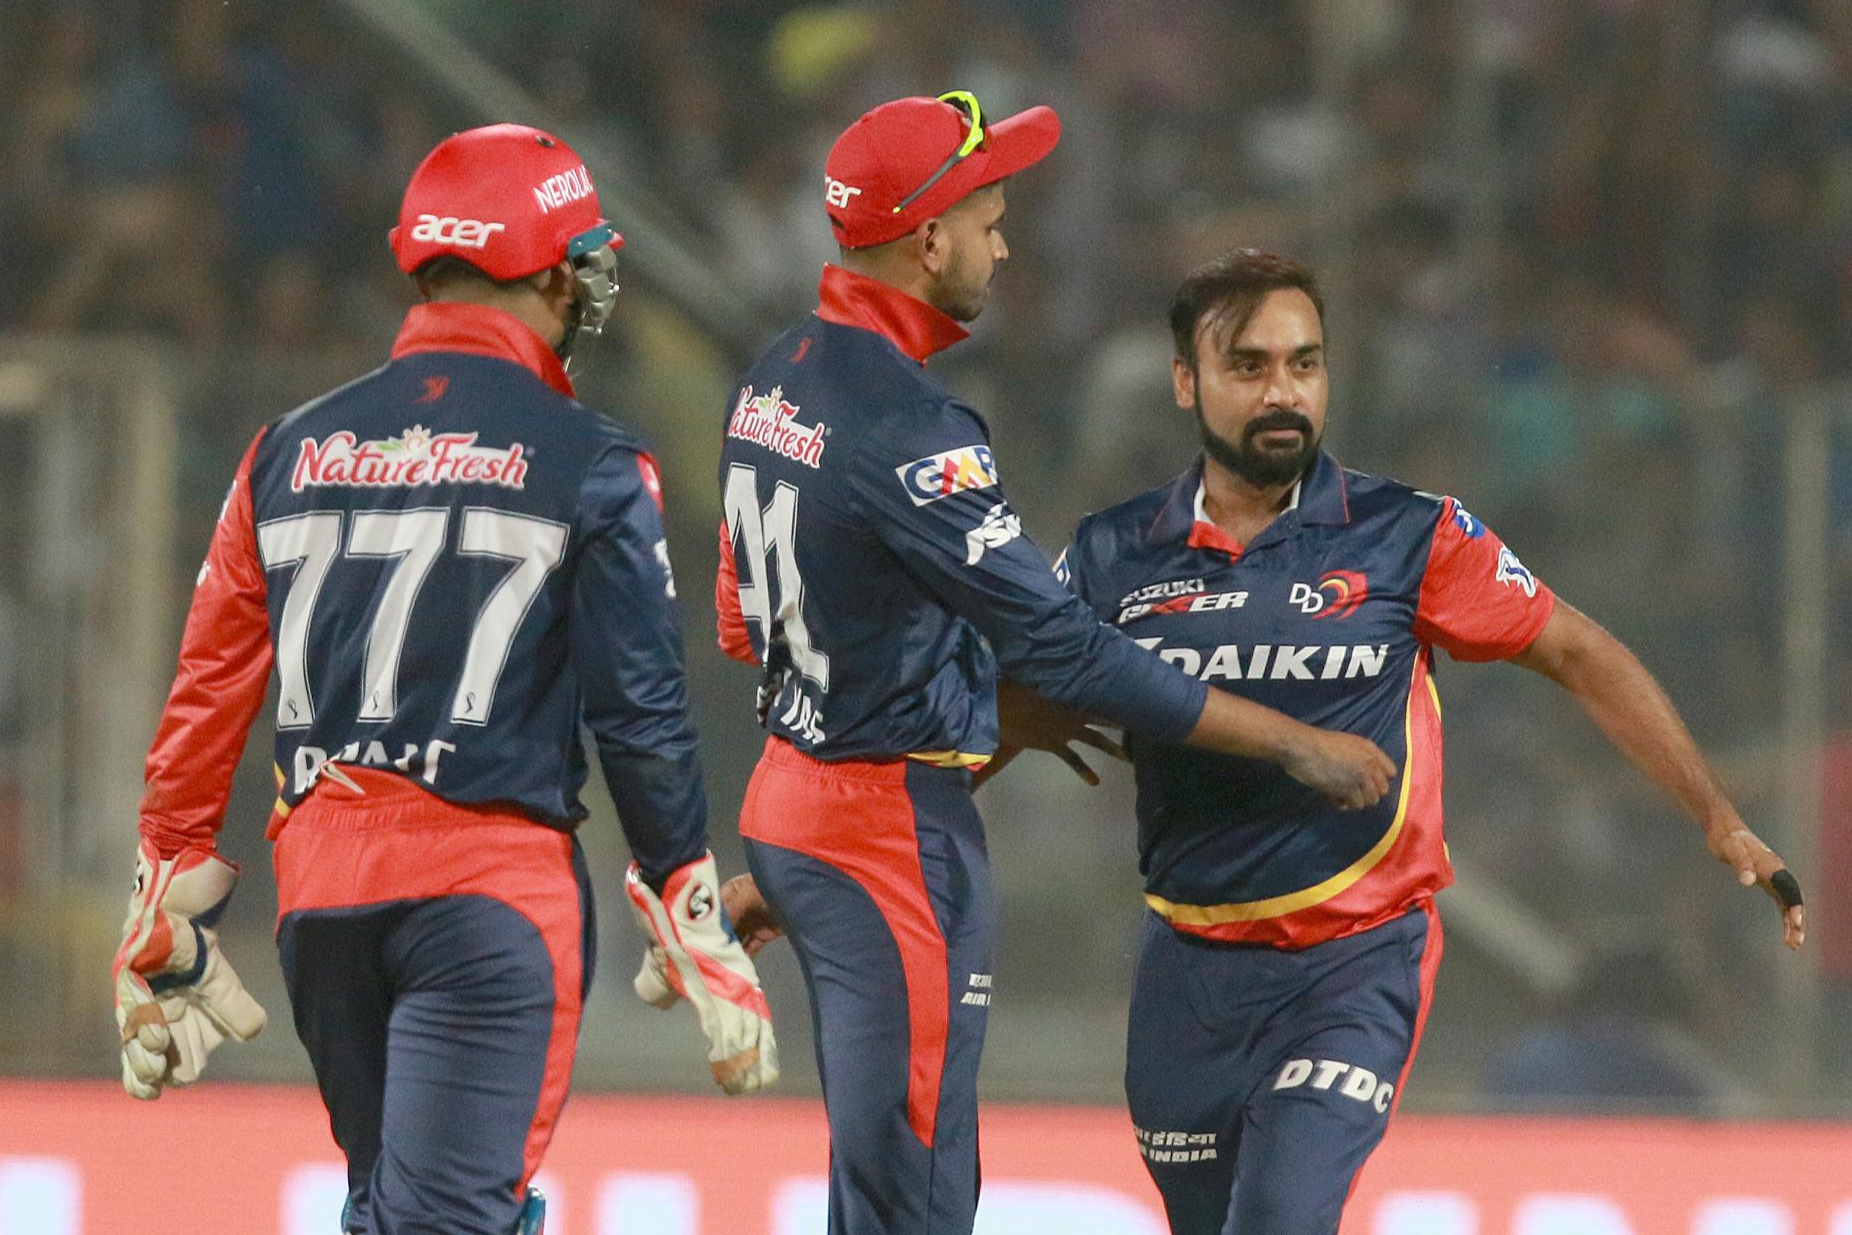 Delhi Capitals - Team Composition and Analysis